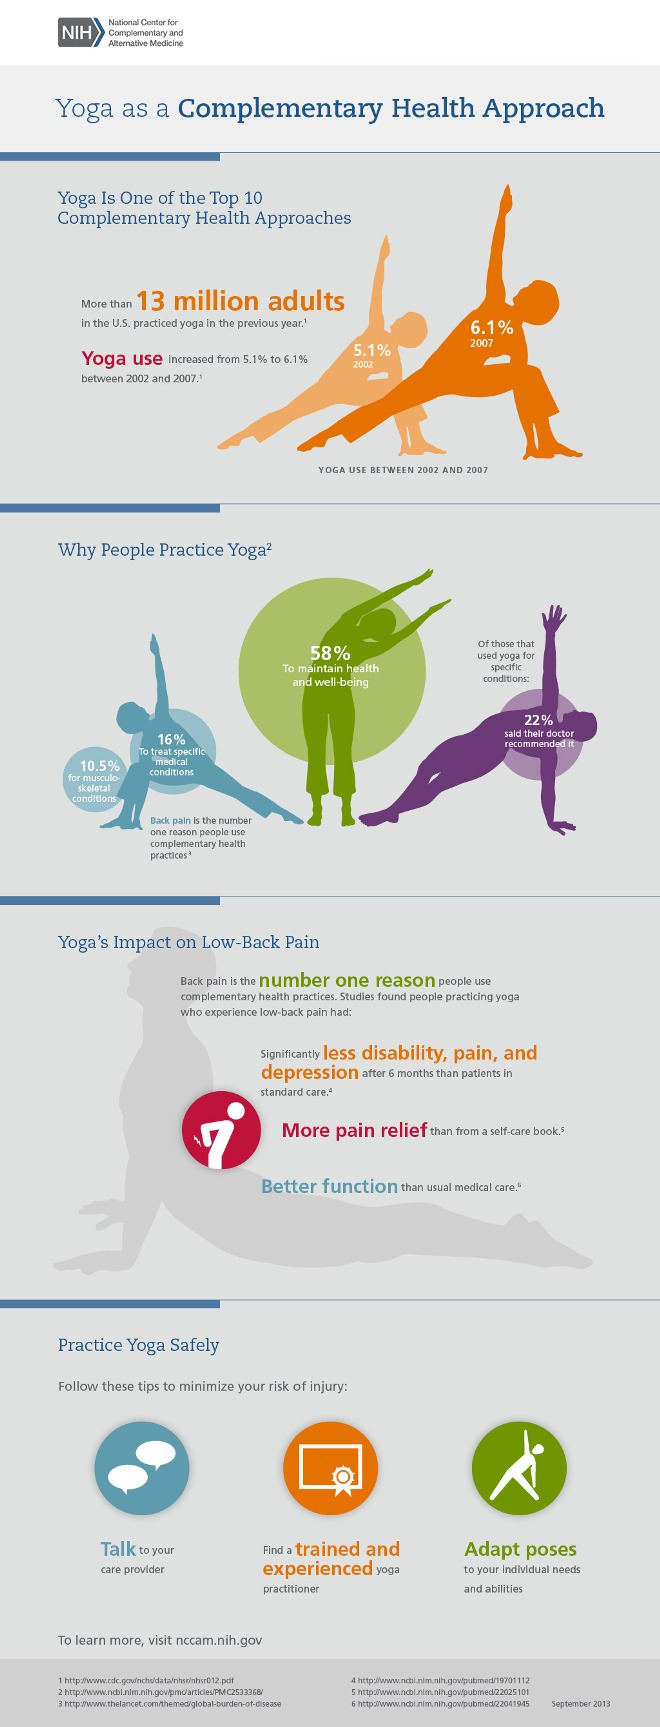 Yoga as a complementary health approach [Infographic]